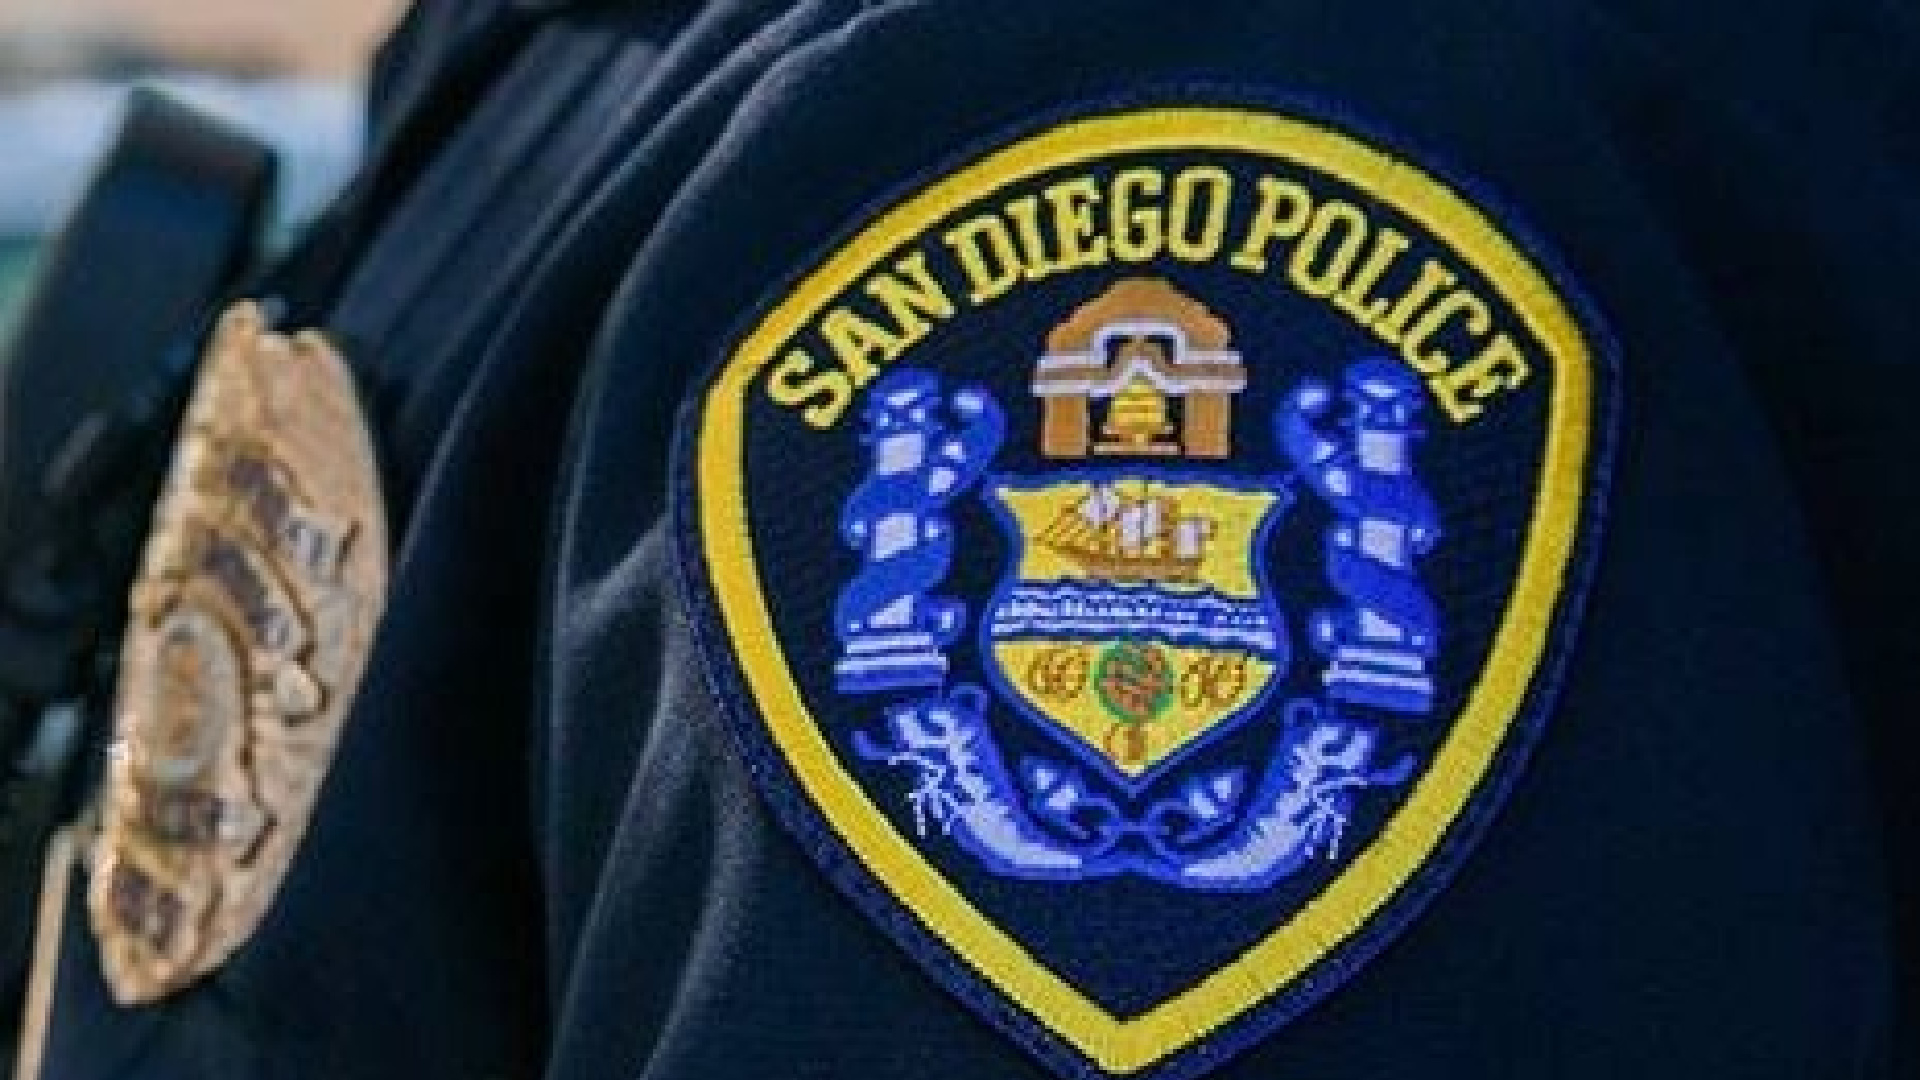 This undated file photo shows the San Diego Police Department's uniform patch. (SDPD/Facebook)